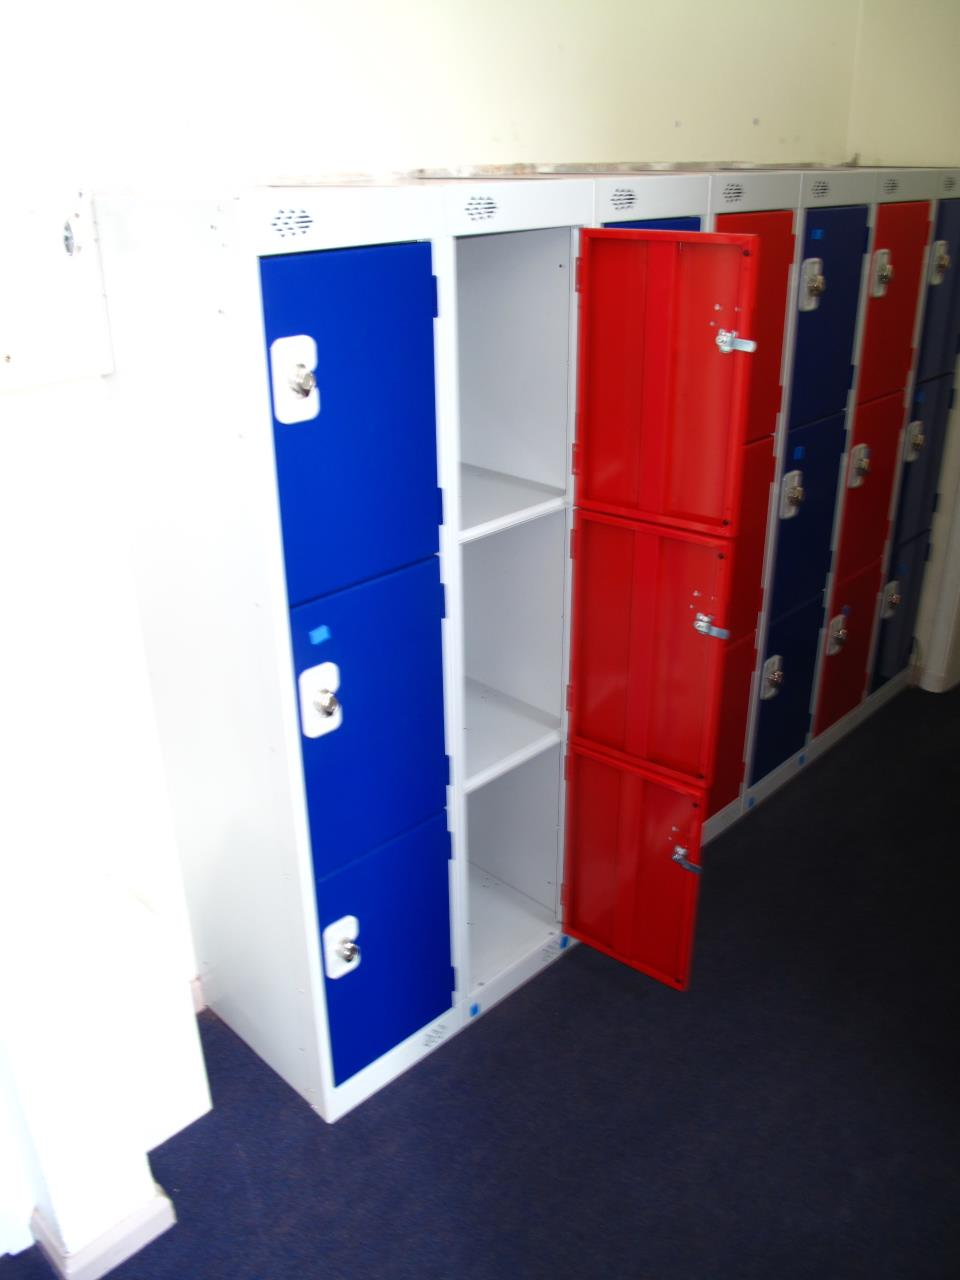 Low School Lockers at Elland C of E School